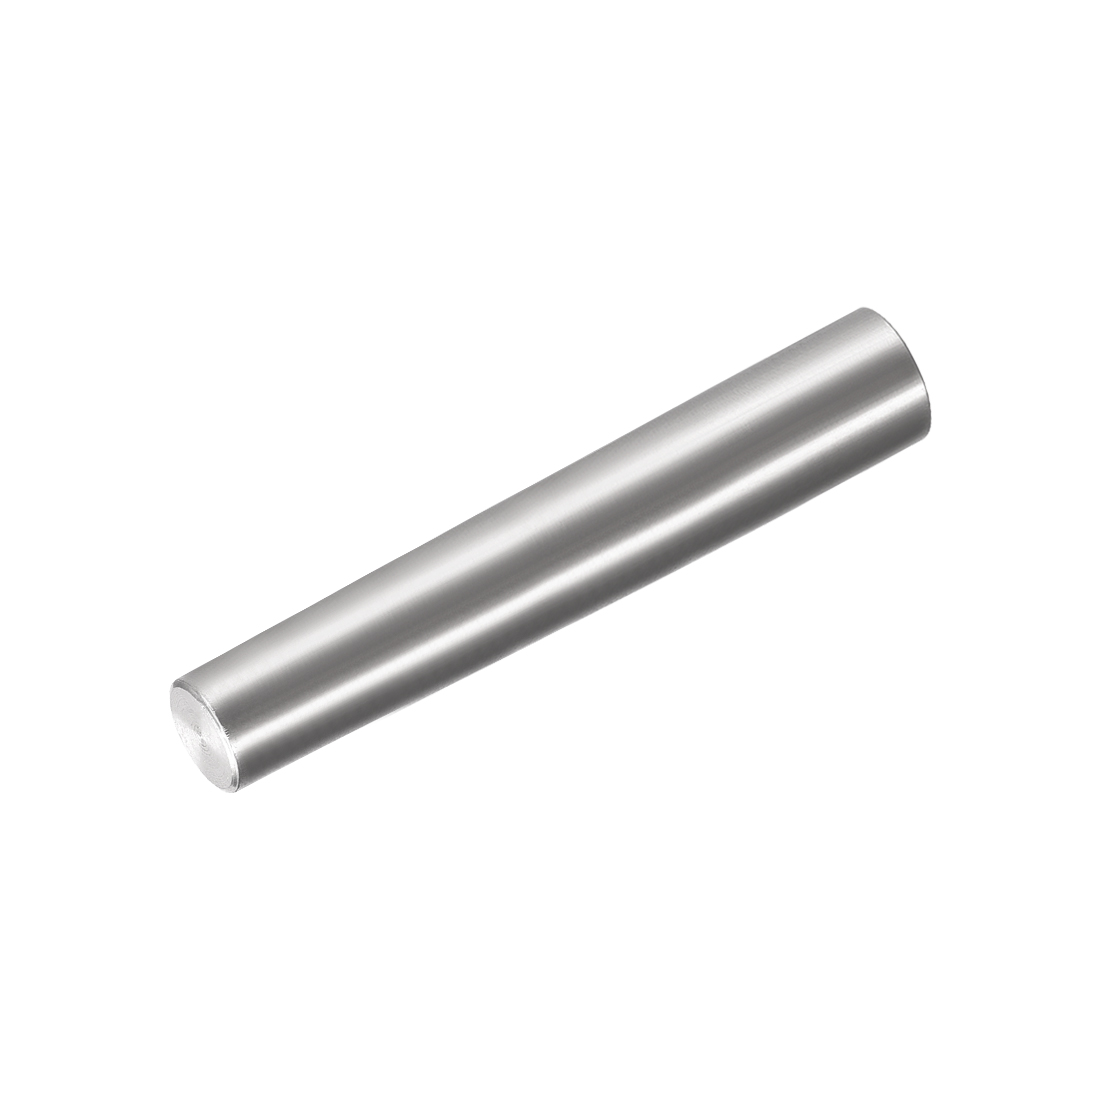 8mm x 50mm 1:50 Taper Pin 304 Stainless Steel Shelf Support Pin Fasten Elements